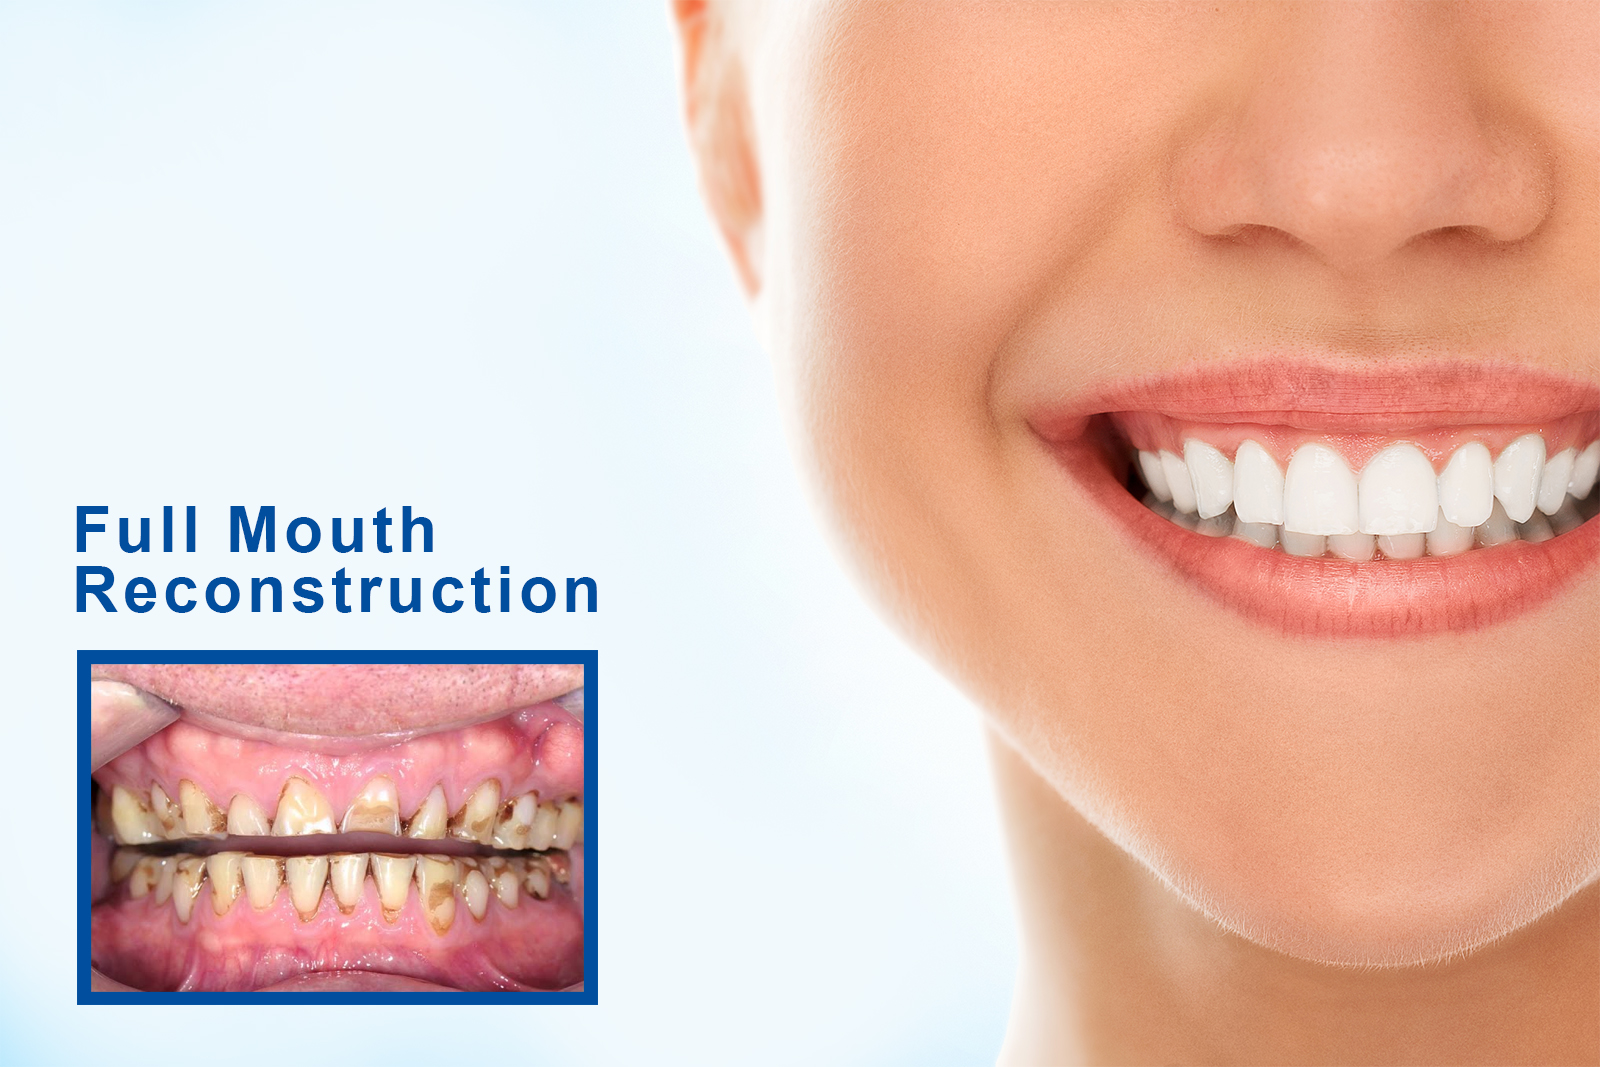 When you should talk to your dentist regarding full mouth restoration?